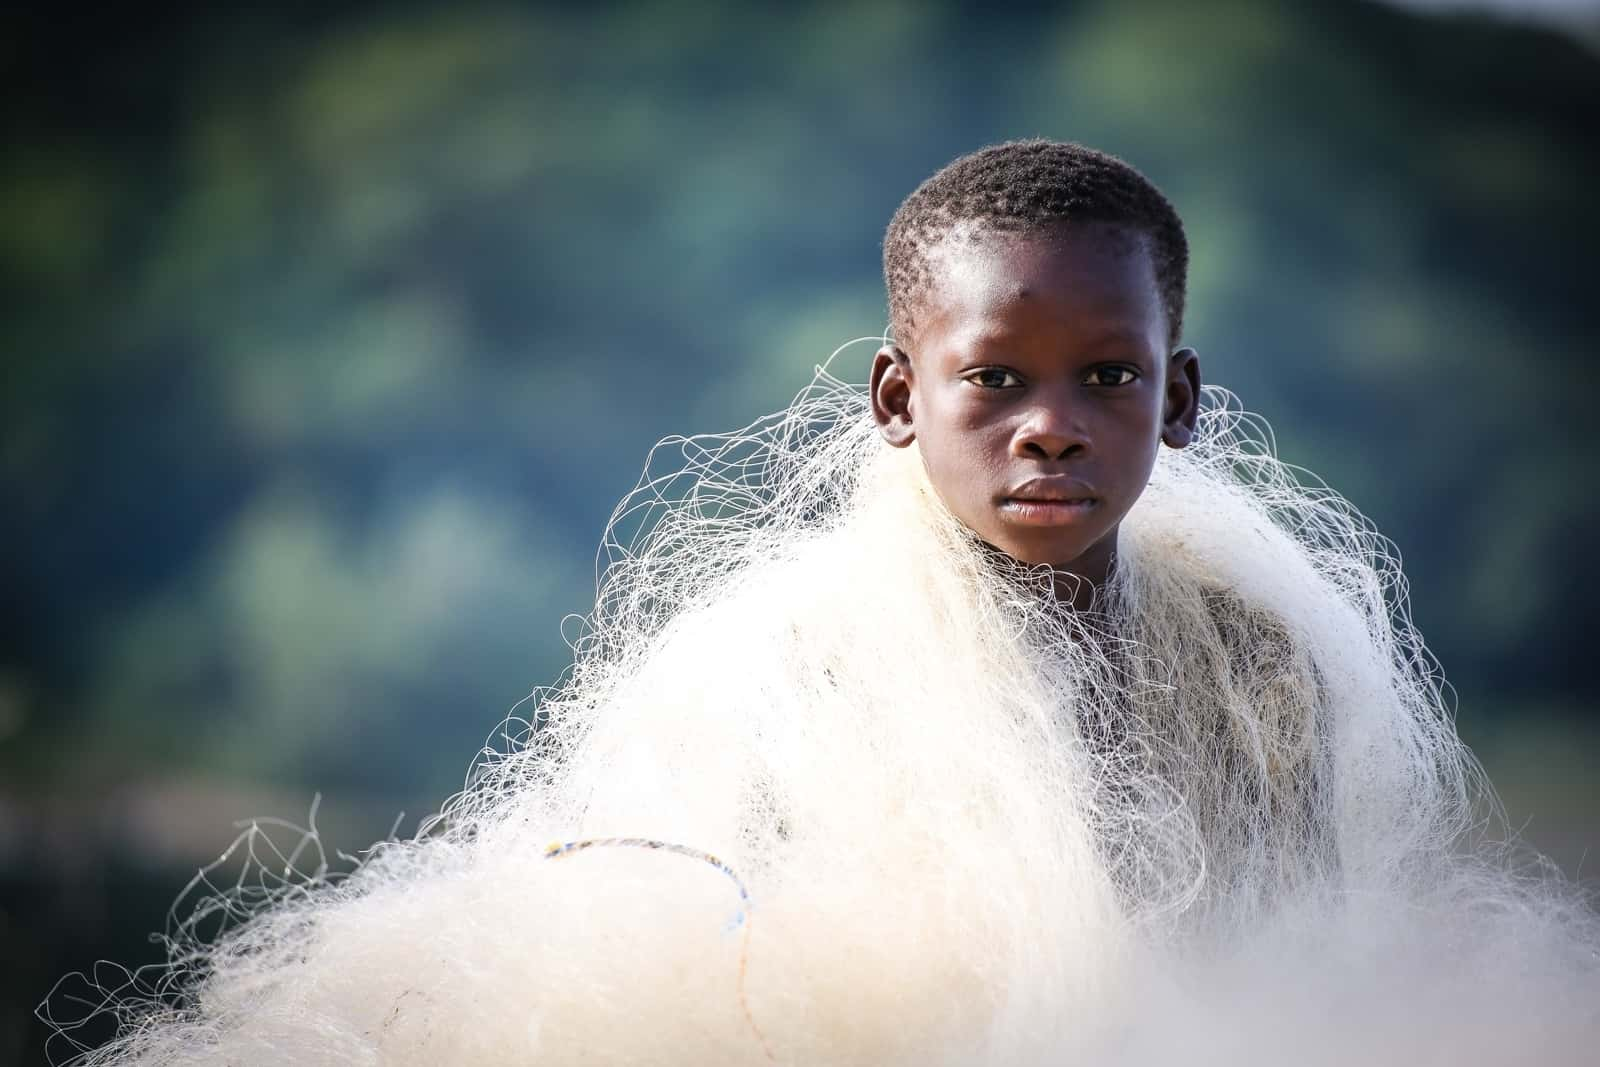 A young boy draped in tangled fishing net looks at the camera with a solemn expression